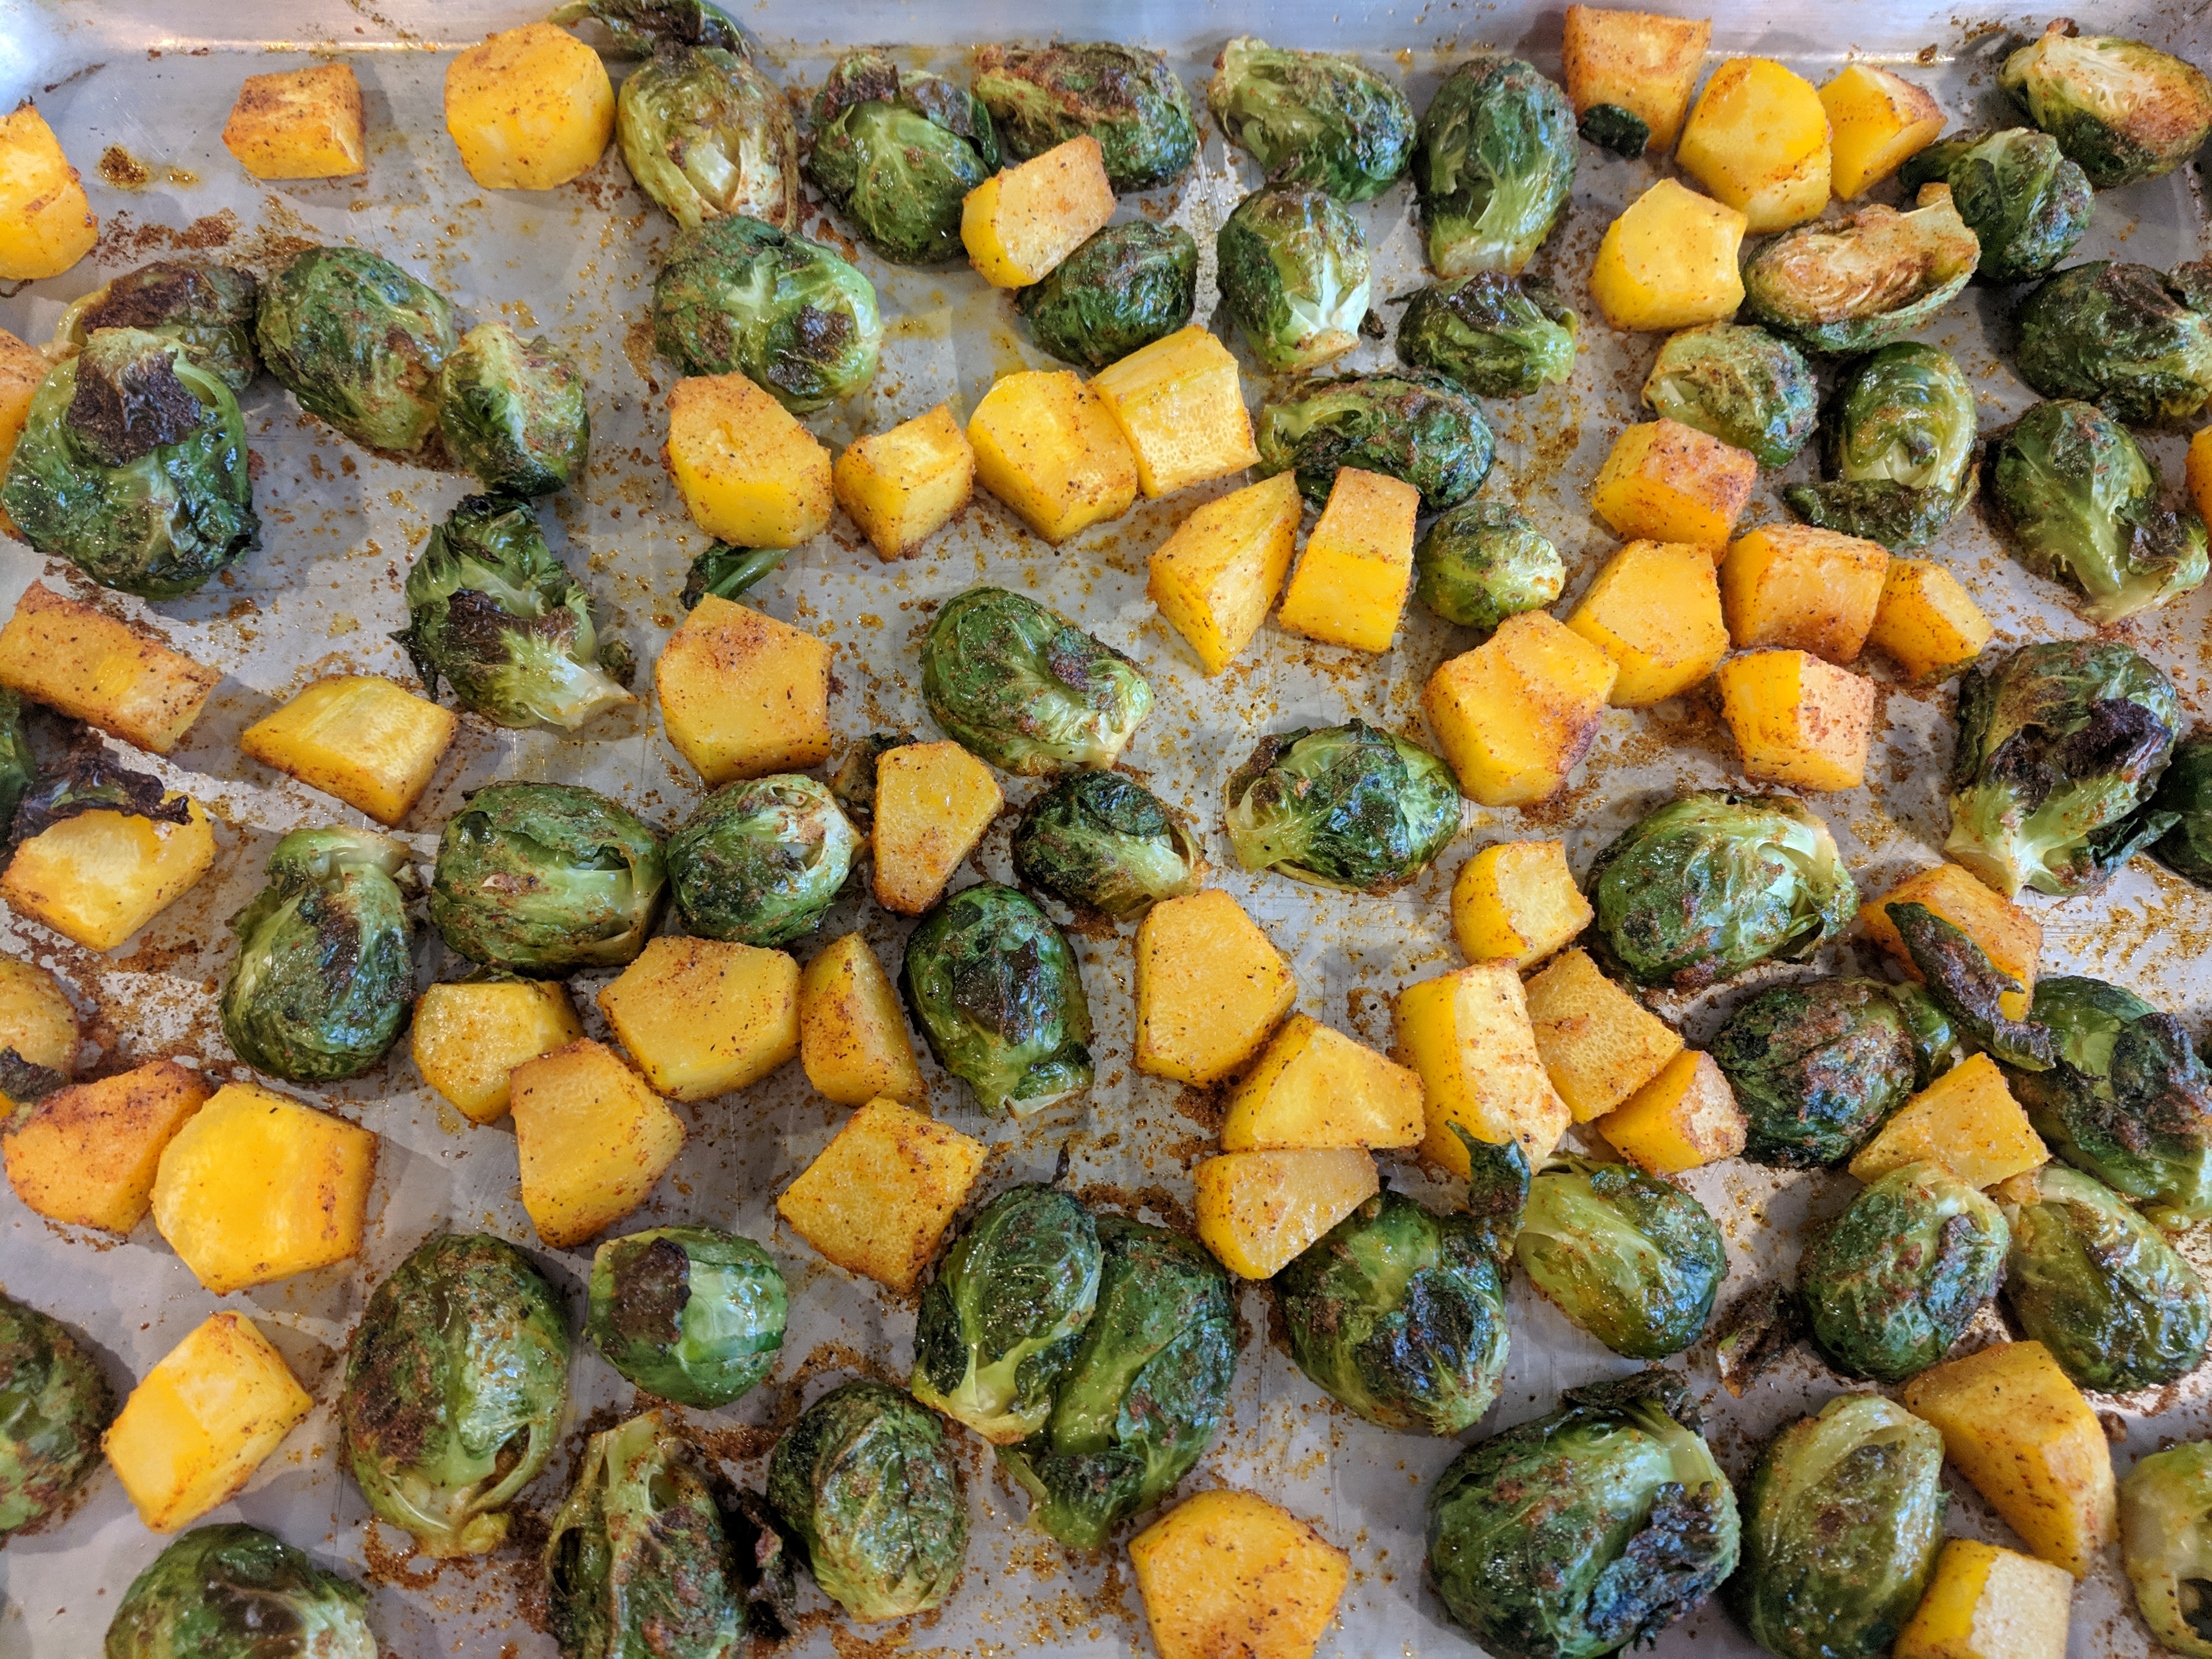 Sheet Pan Vegan Roasted Brussels Sprouts and Butternut Squash Grace Preya.